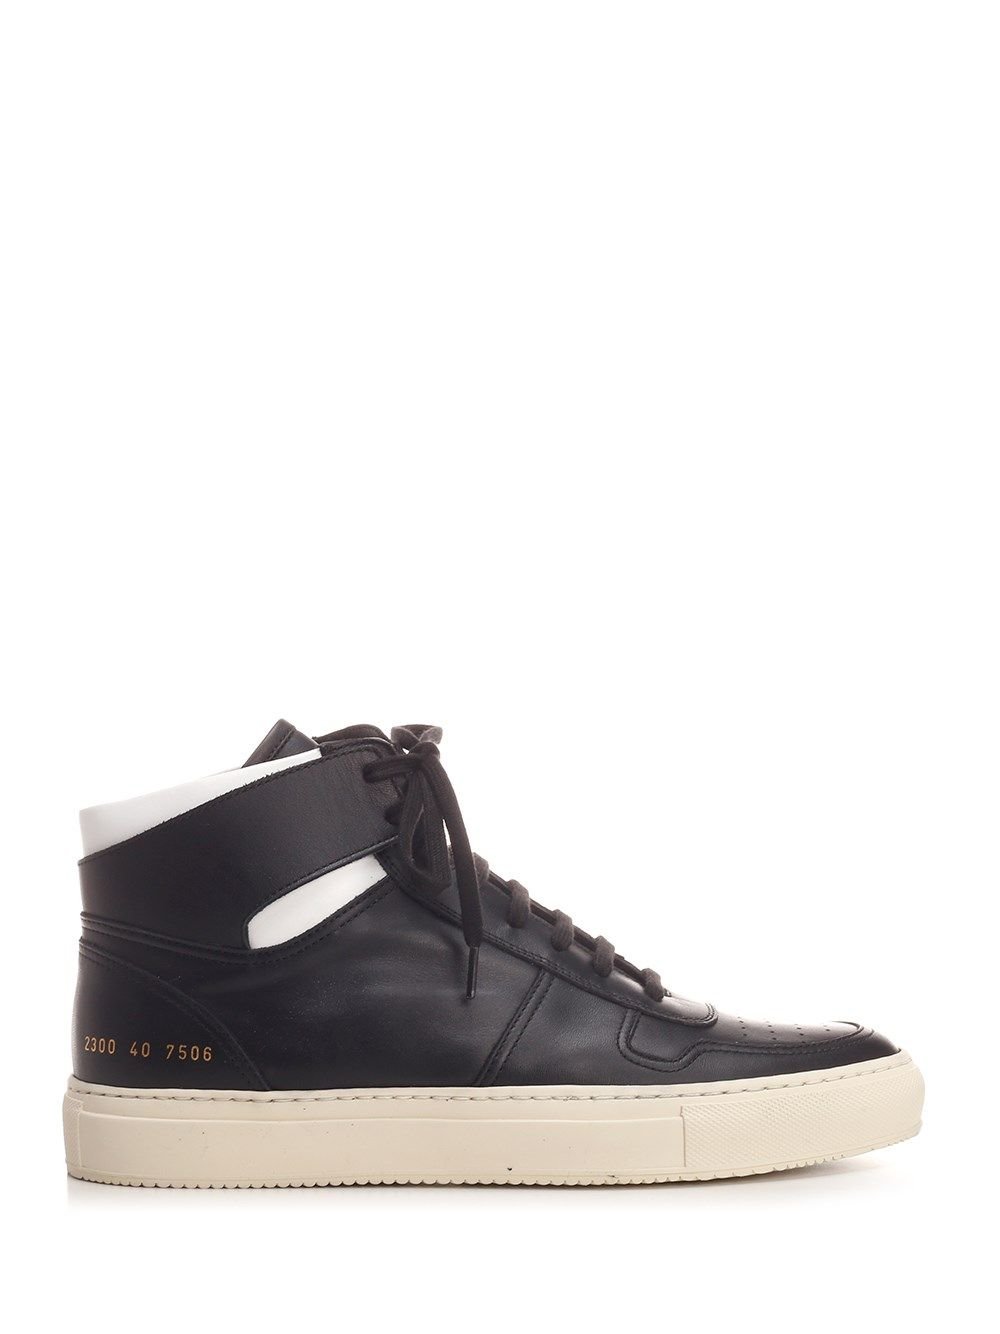 Common Projects Leathers COMMON PROJECTS MEN'S 23007506 BLACK OTHER MATERIALS SNEAKERS